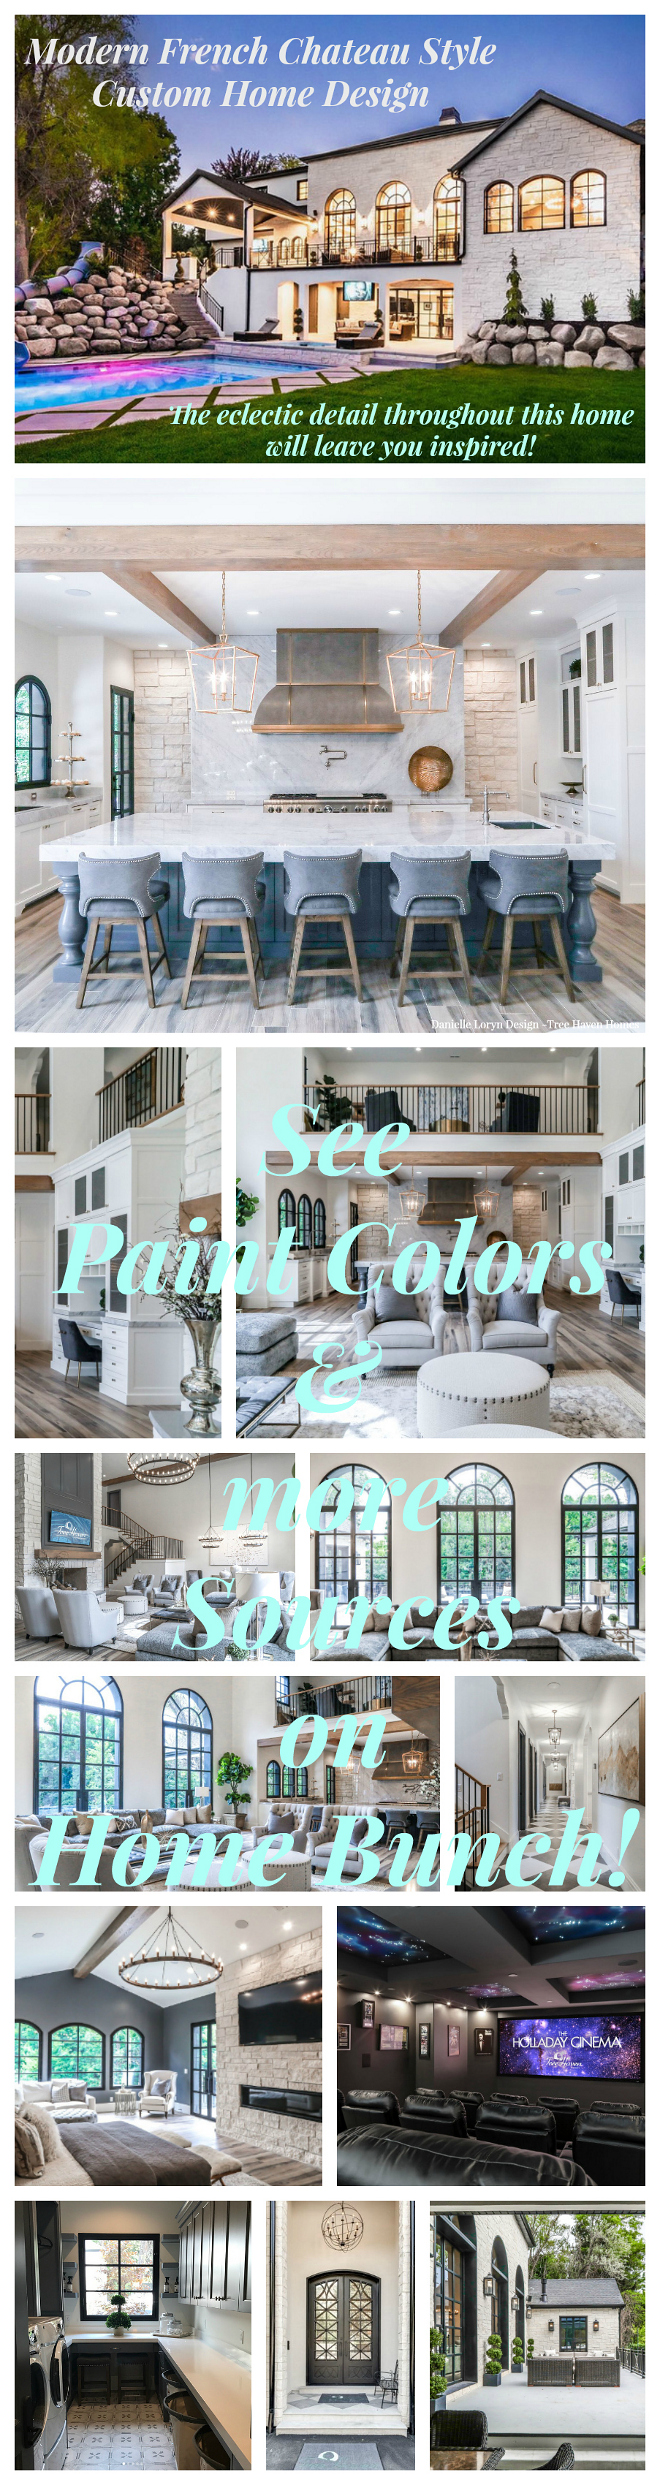 Modern French Chateau Style Custom Home Design. Modern French Chateau Style Custom Home Design Paint Colors and furniture souces #ModernFrenchChateau #FrenchStyleHome #CustomHome #CustomHome Home Bunch